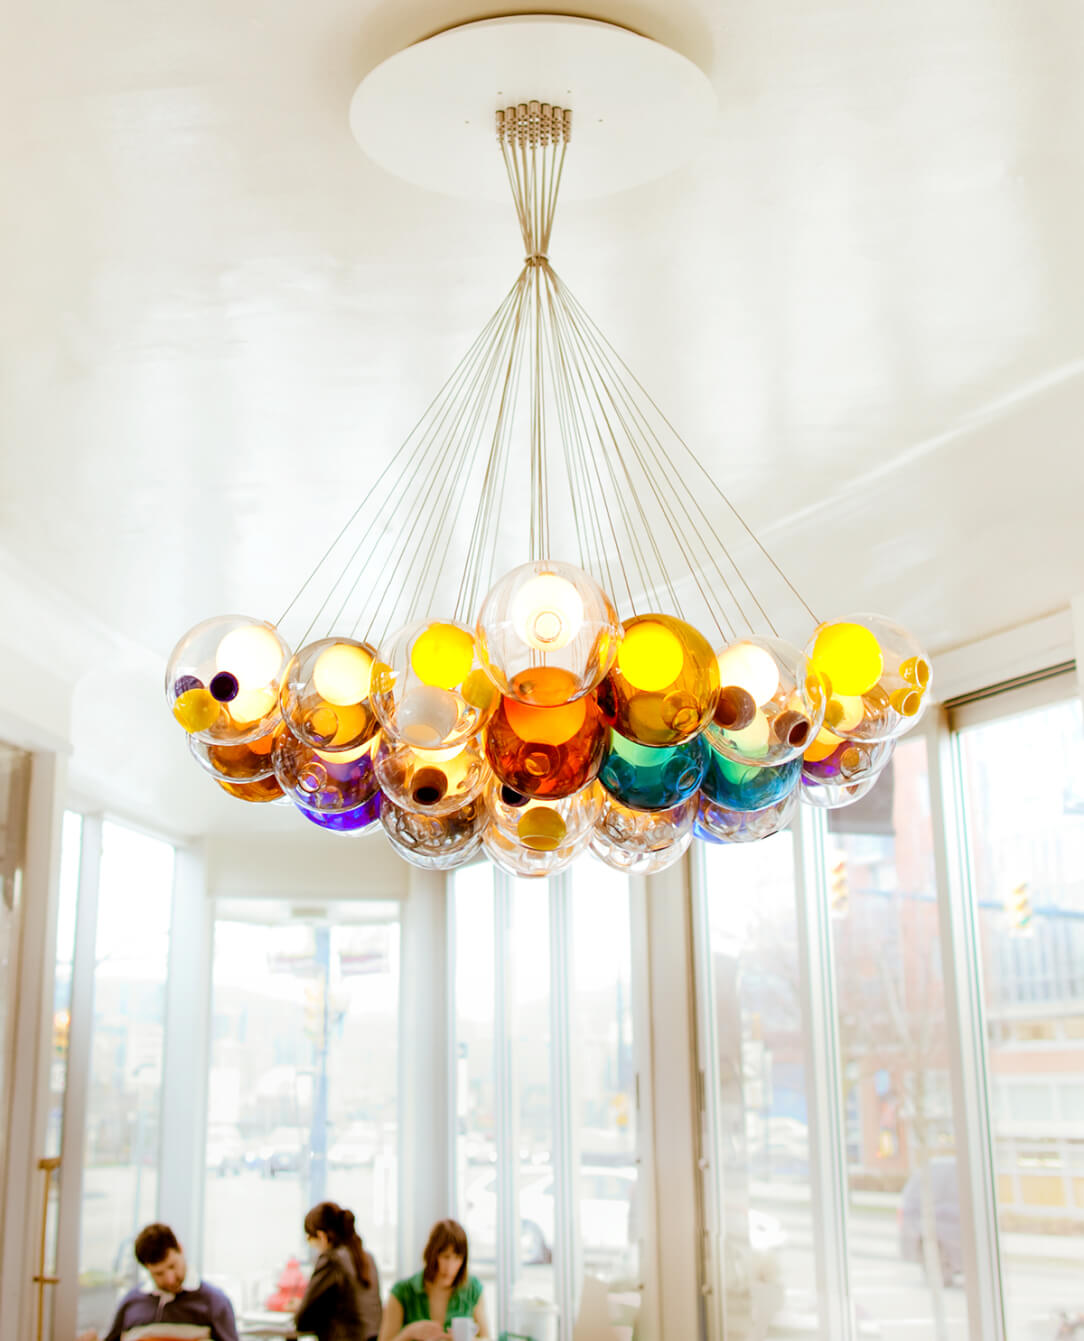 A photo of one of the Cluster hanging lights from the 28 Series from Bocci Design